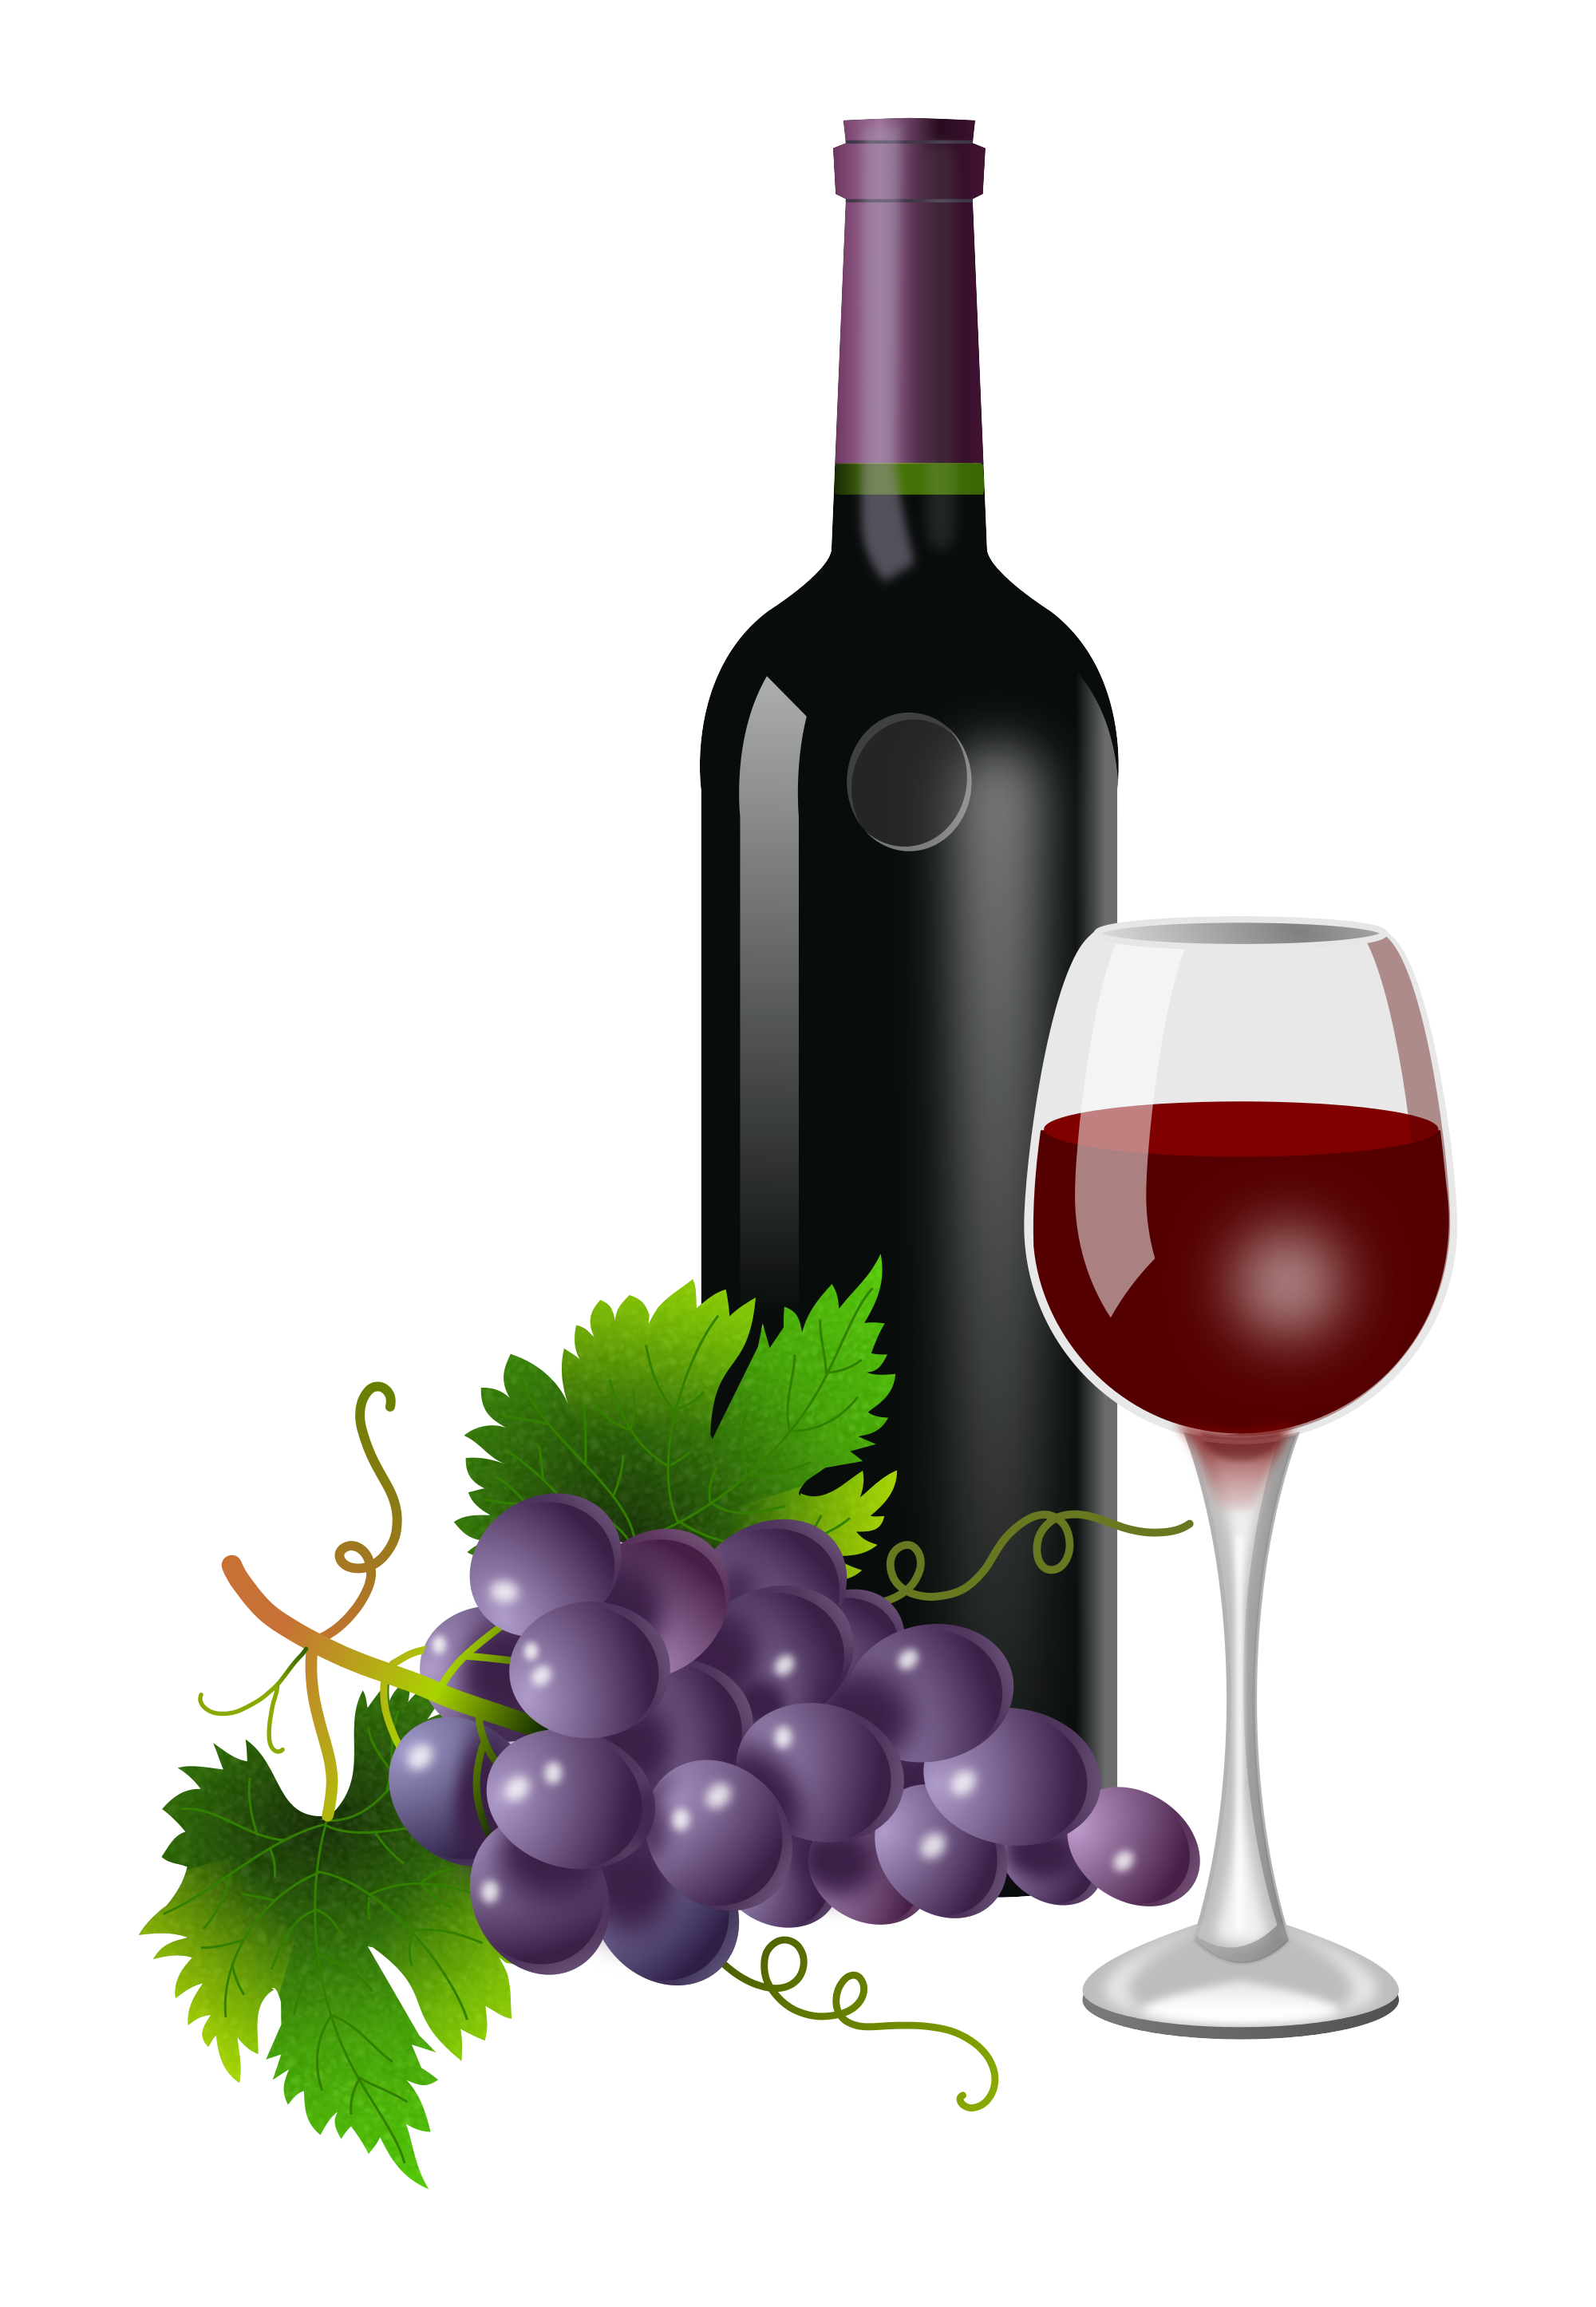 Transparent. Wine bottle and glass png